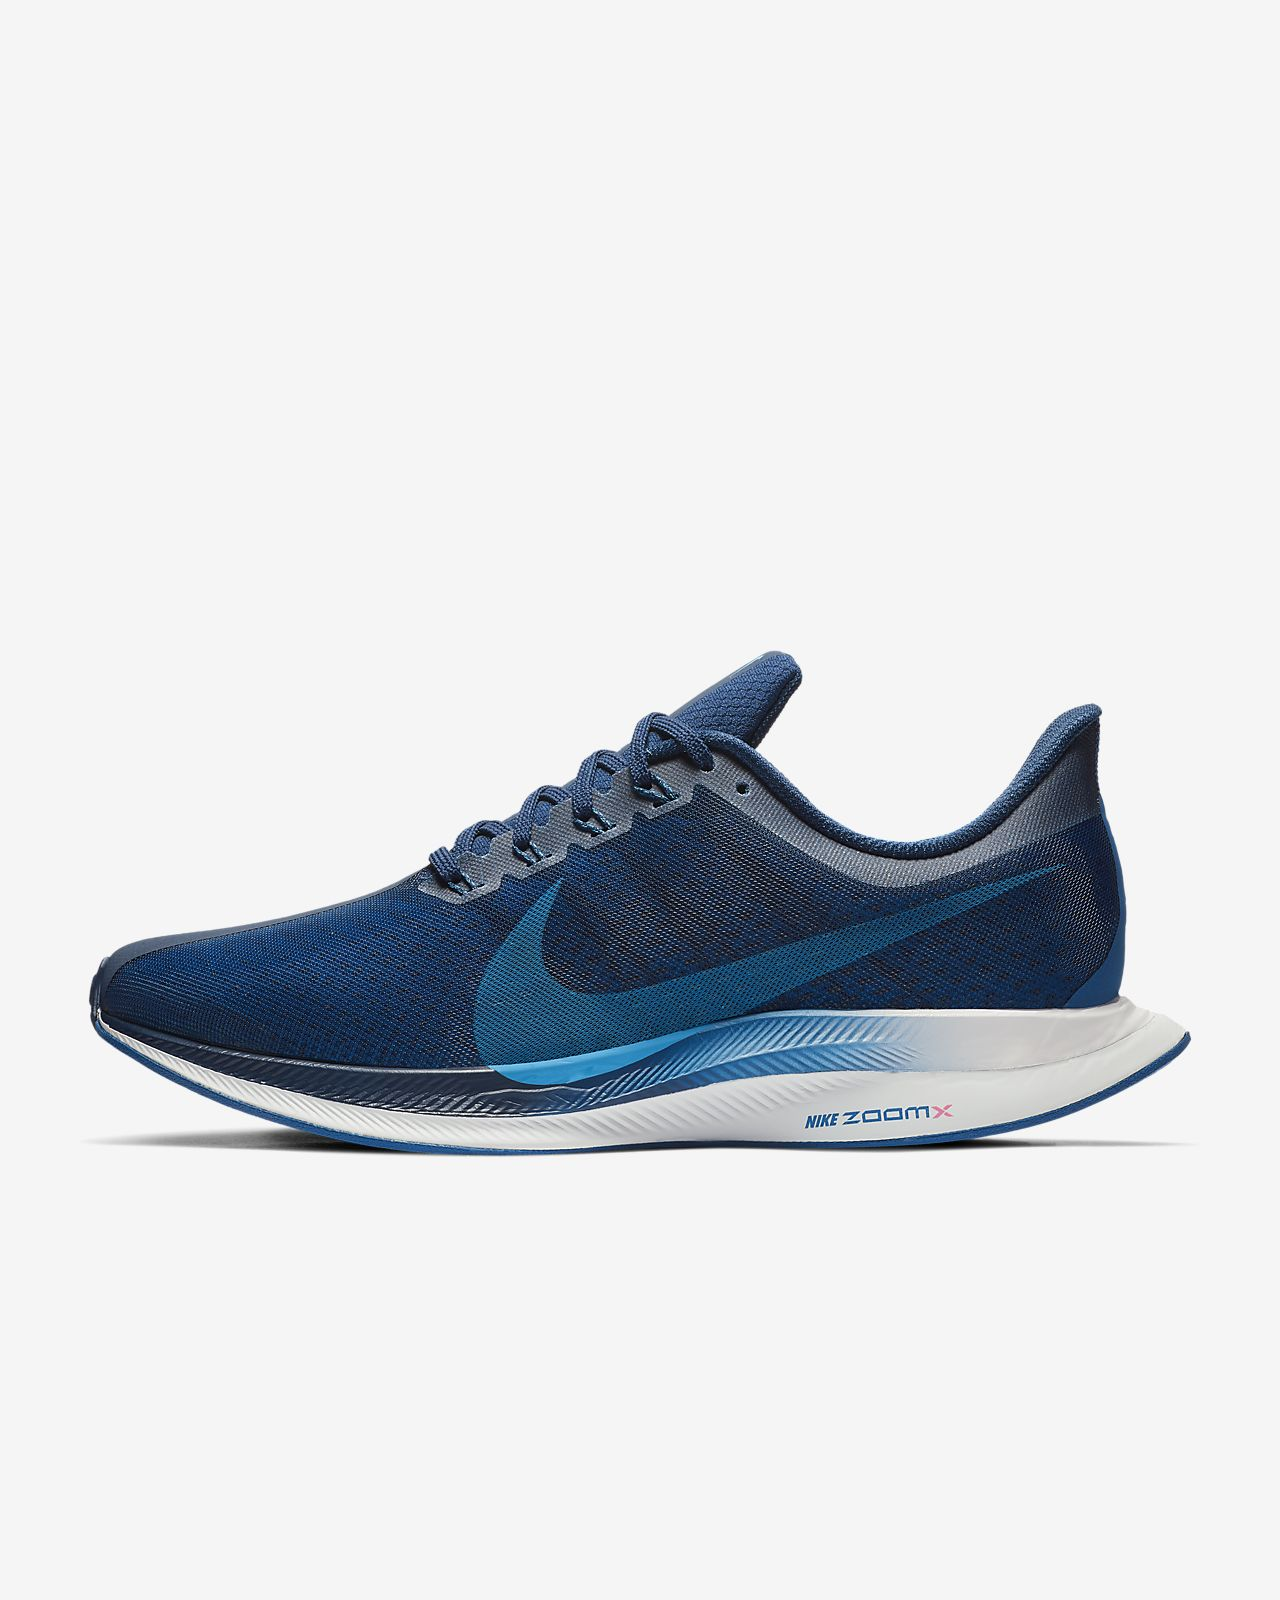 on sale 77bb7 ce5f4 Men s Running Shoe. Nike Zoom Pegasus Turbo